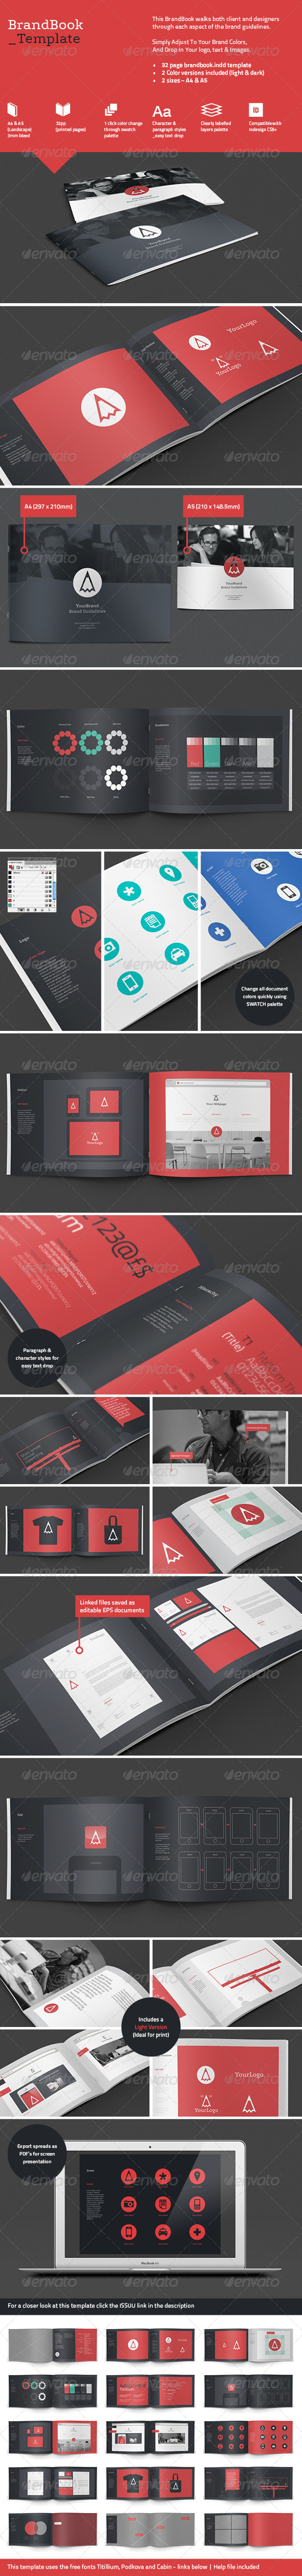 GraphicRiver BrandBook 4806571